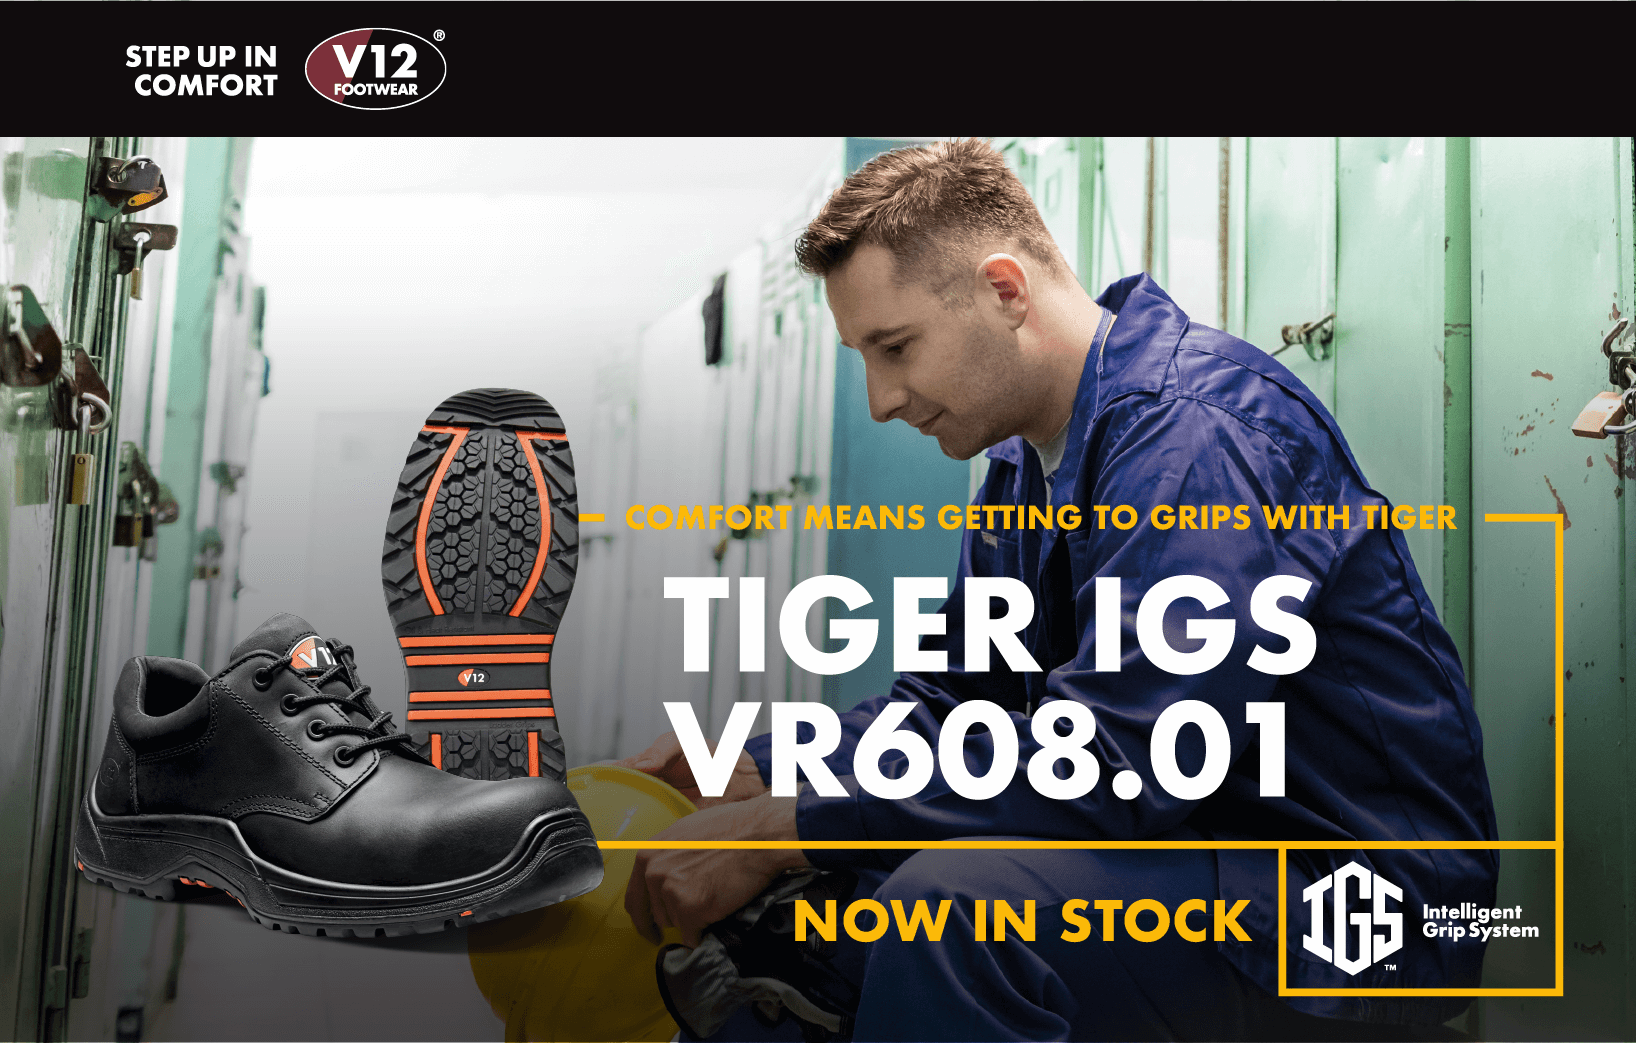 The best slip resistant shoe | the VR608.01 Tiger IGS